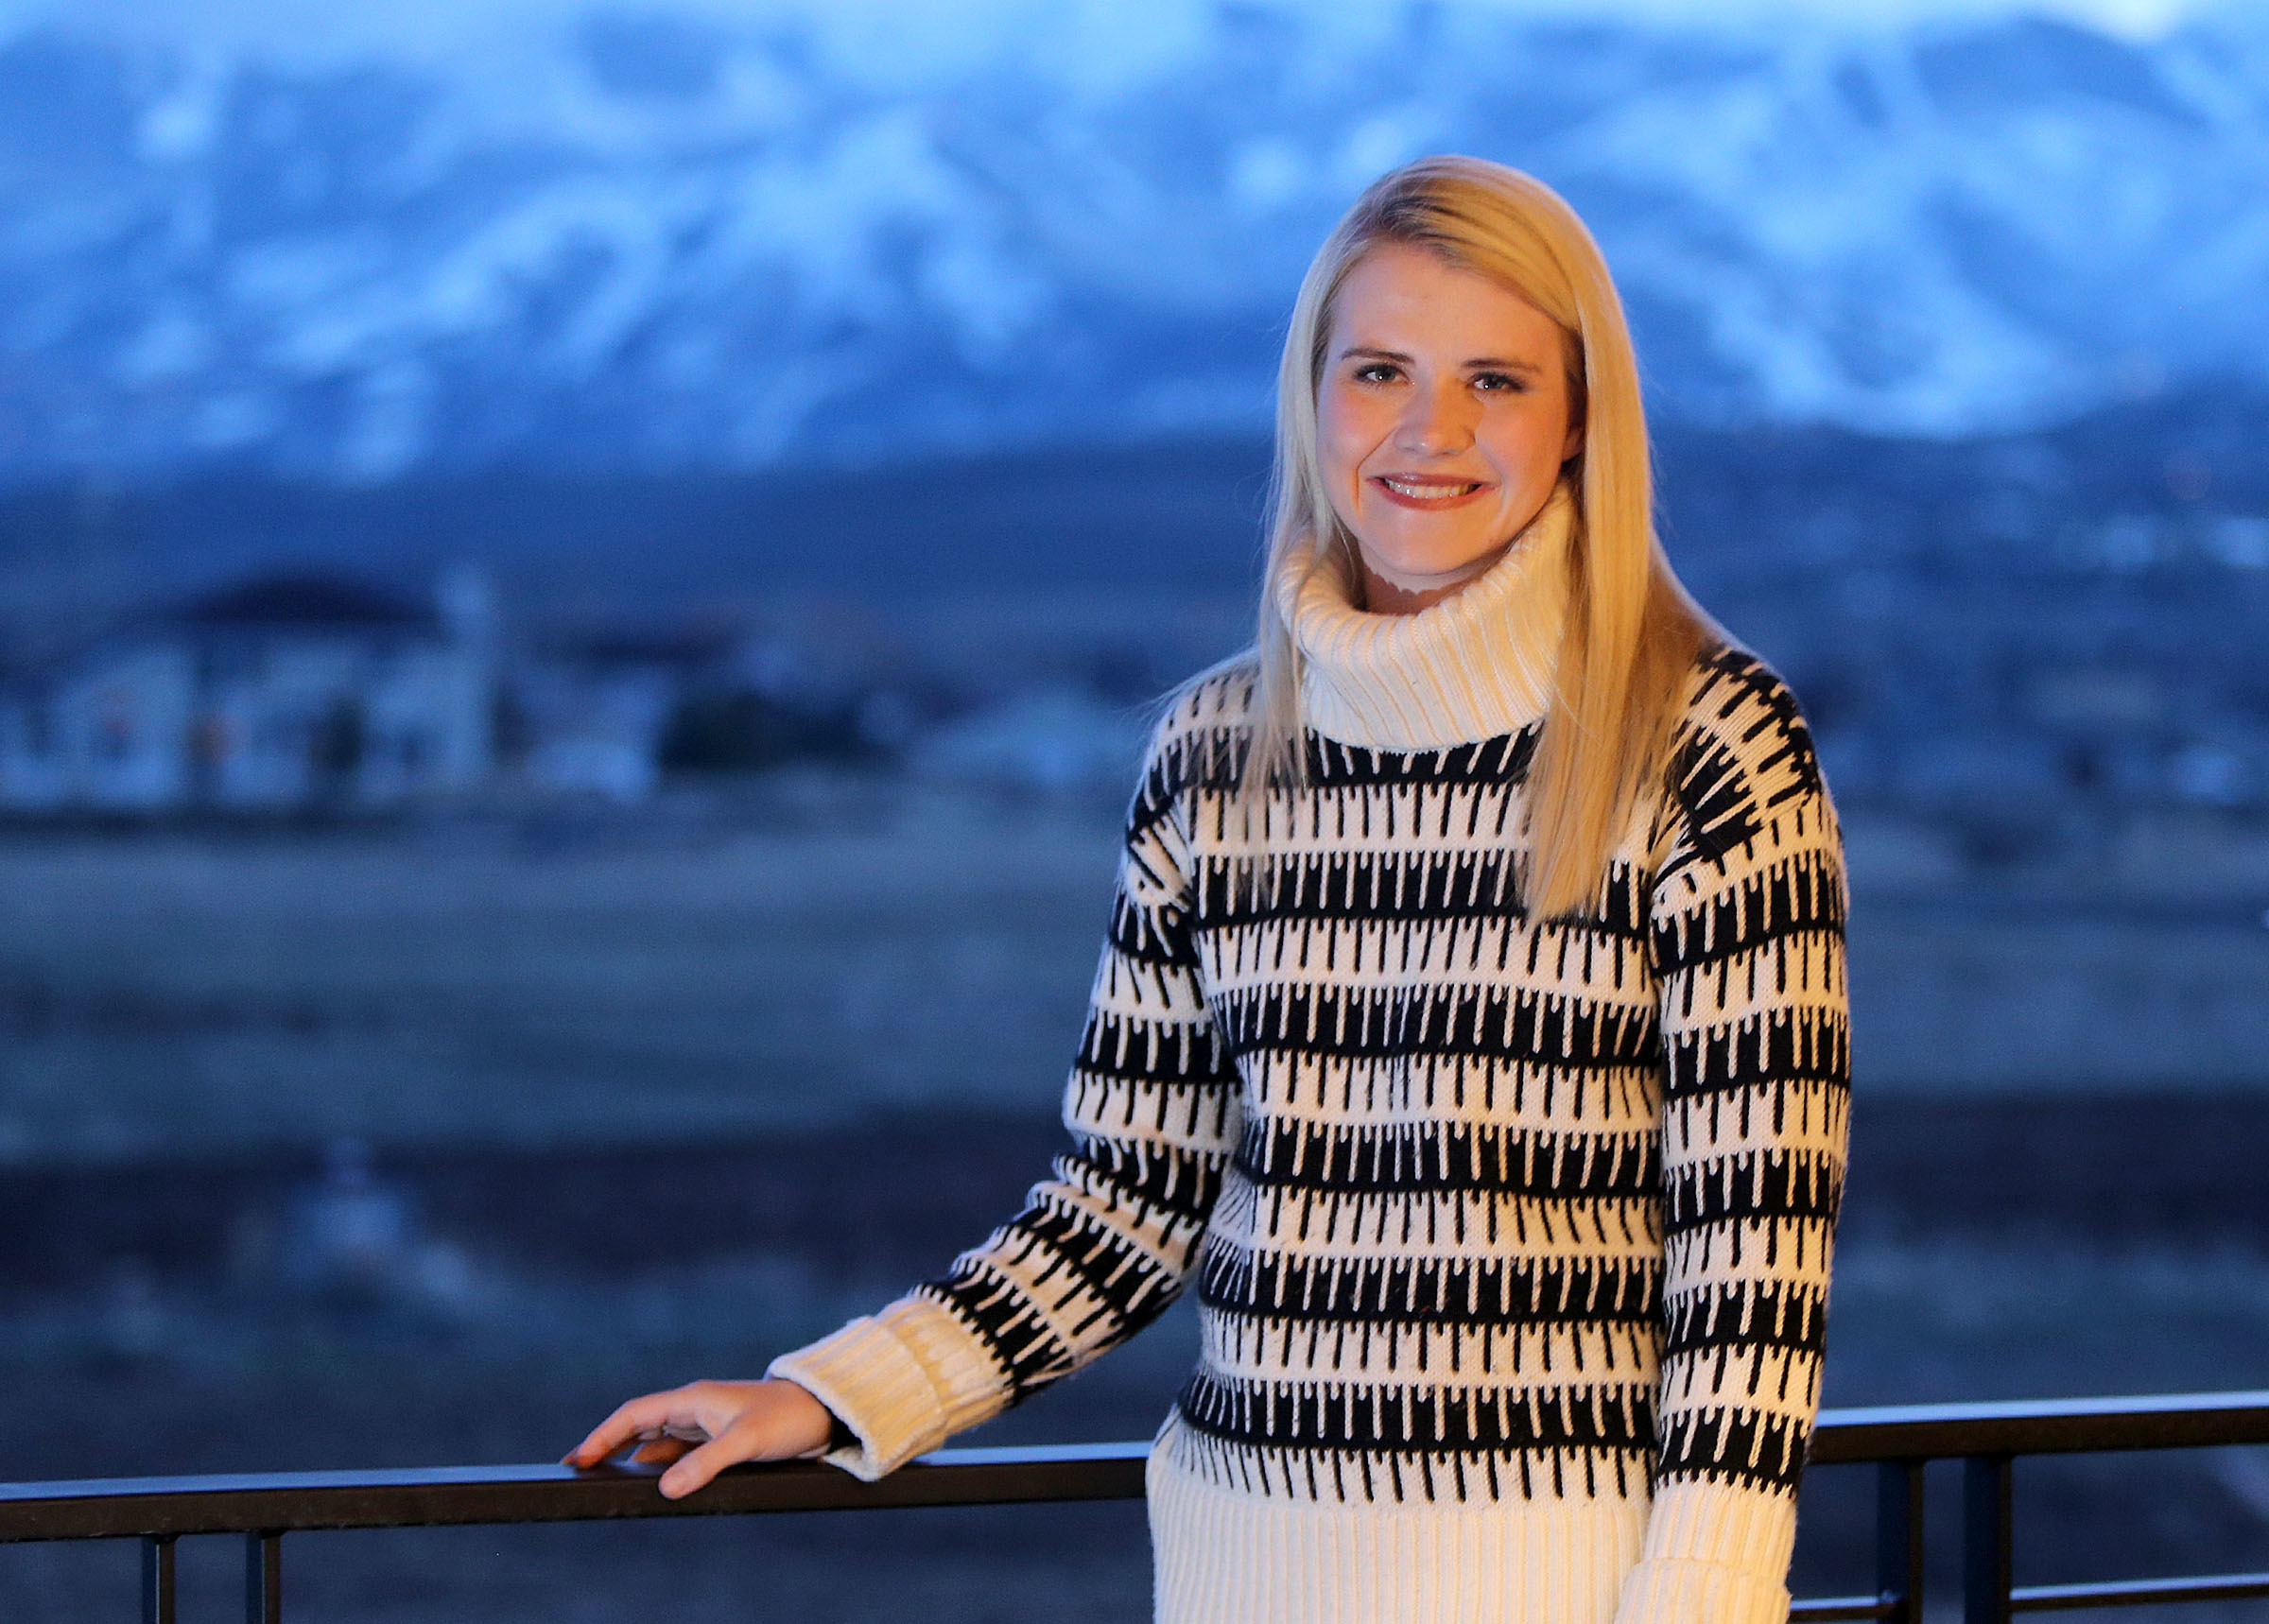 Elizabeth Smart poses for a portrait at home in Park City on Saturday, March 24, 2018.